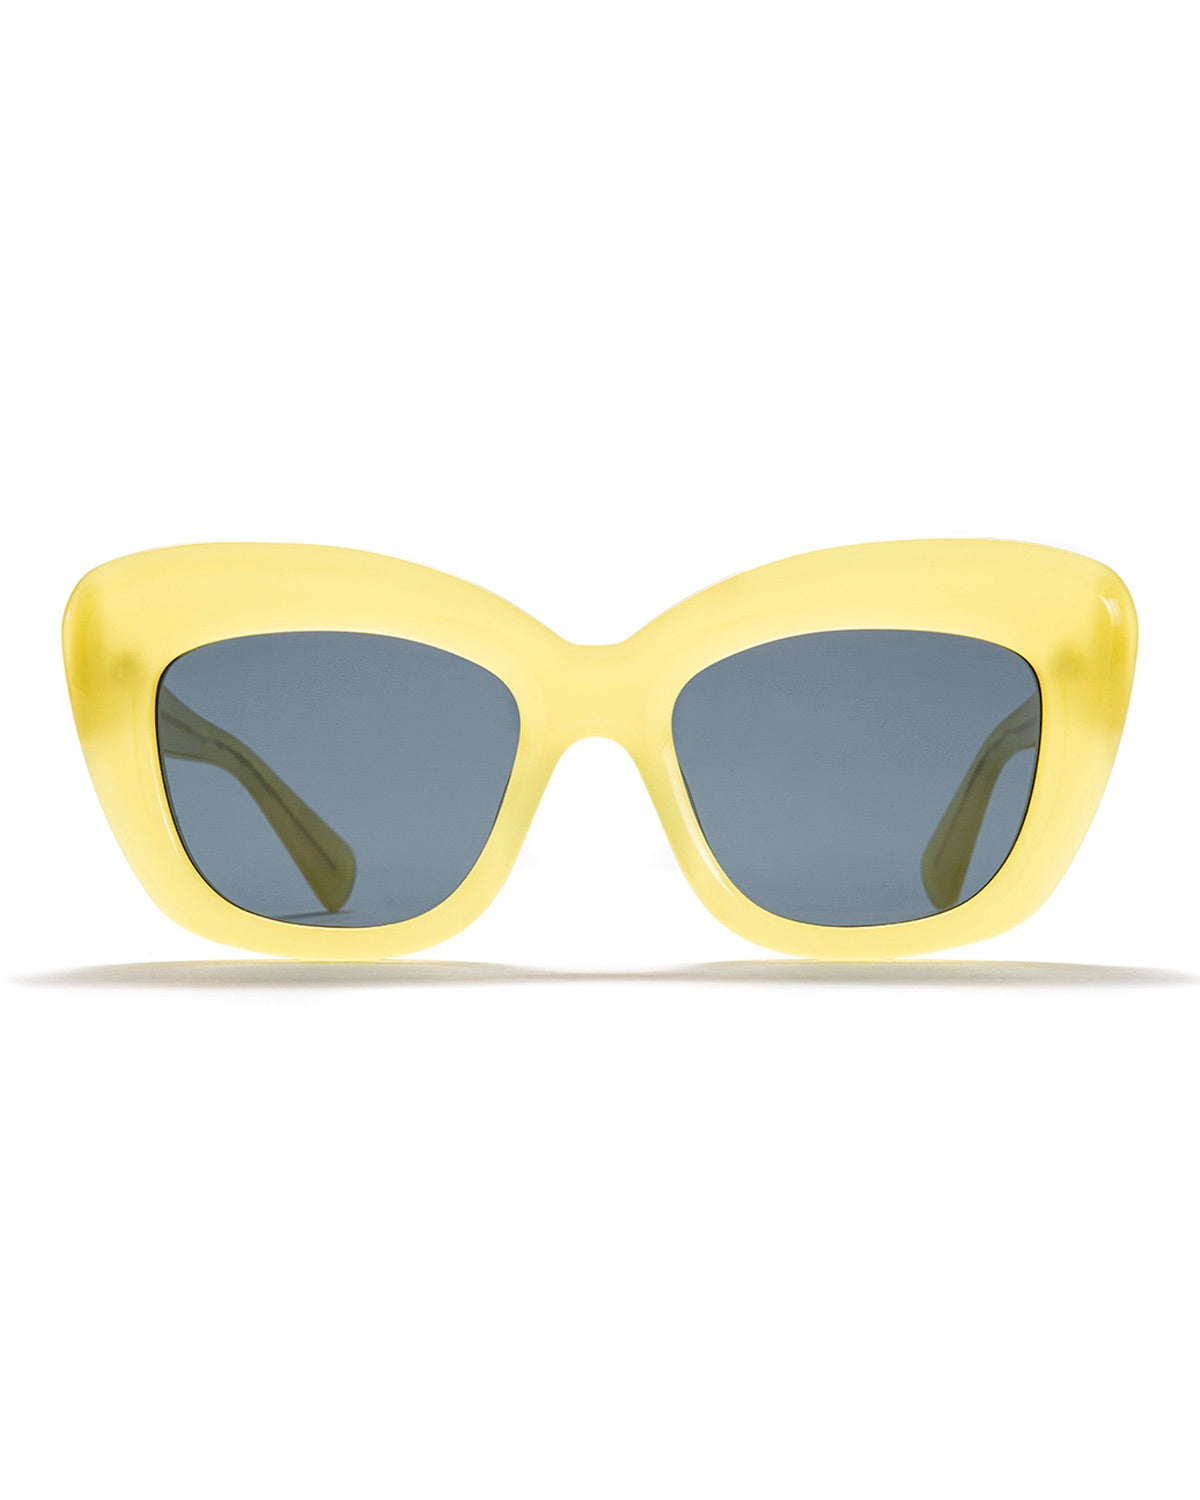 Chibi Sunglasses - Translucent Yellow